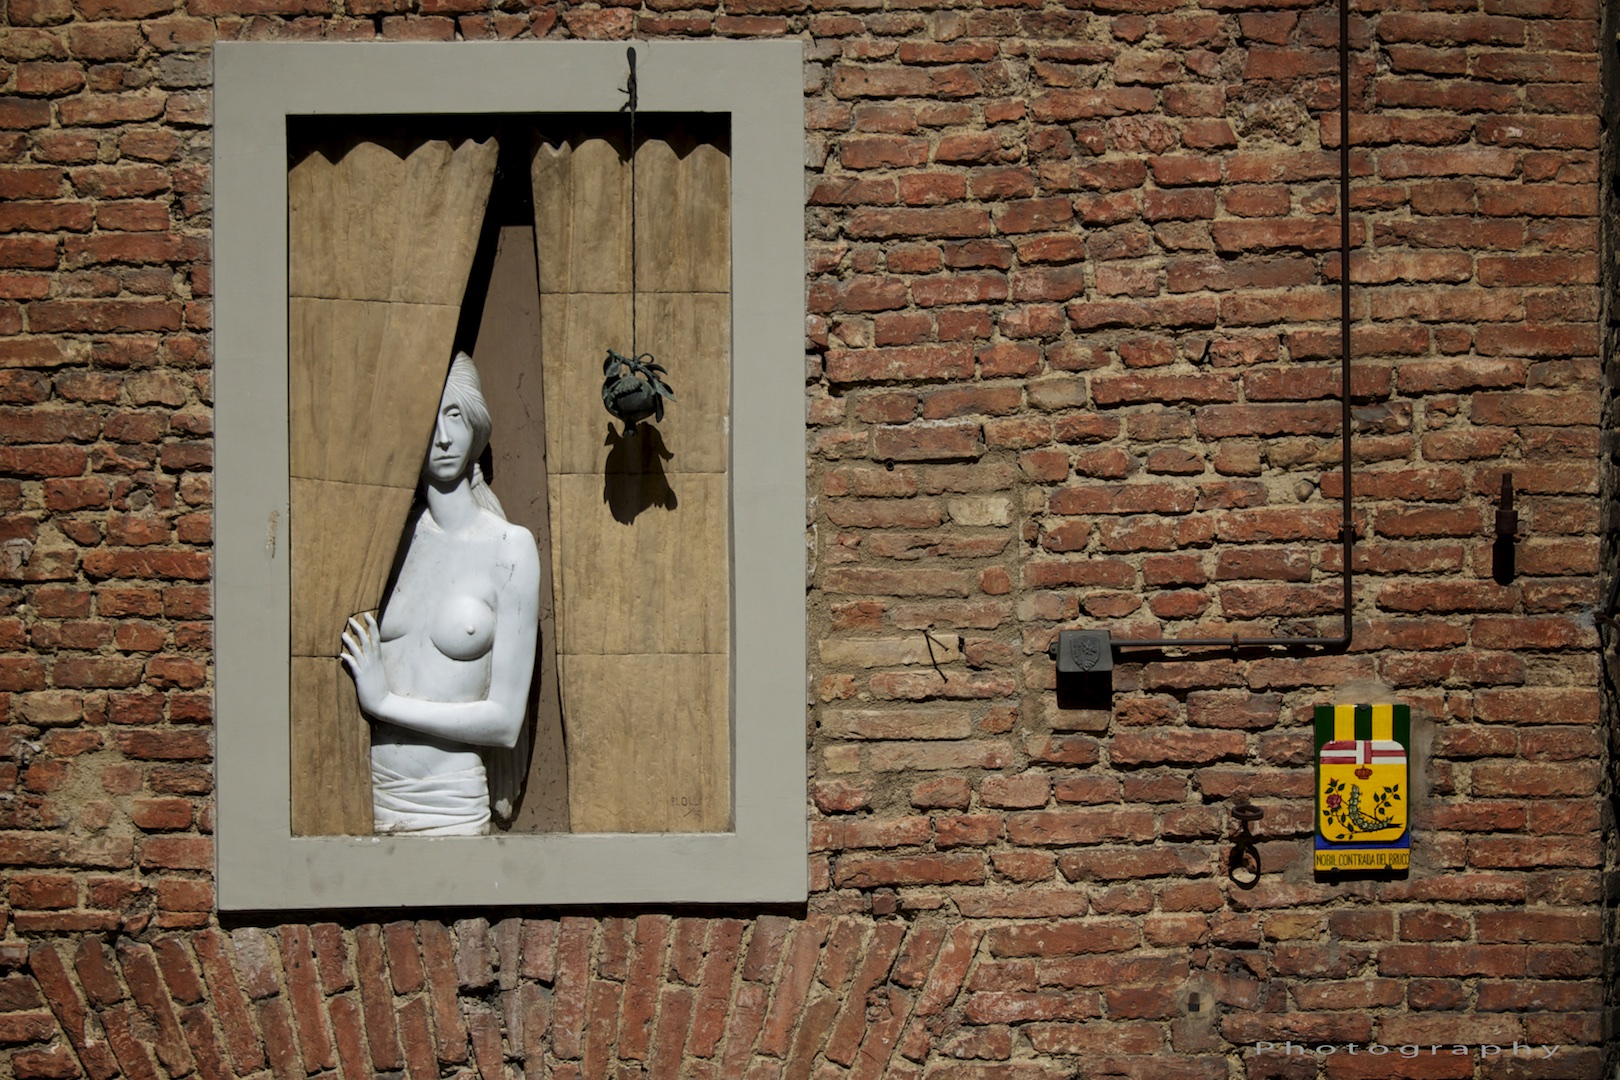 A marble woman at the window. Portrait or architecture?